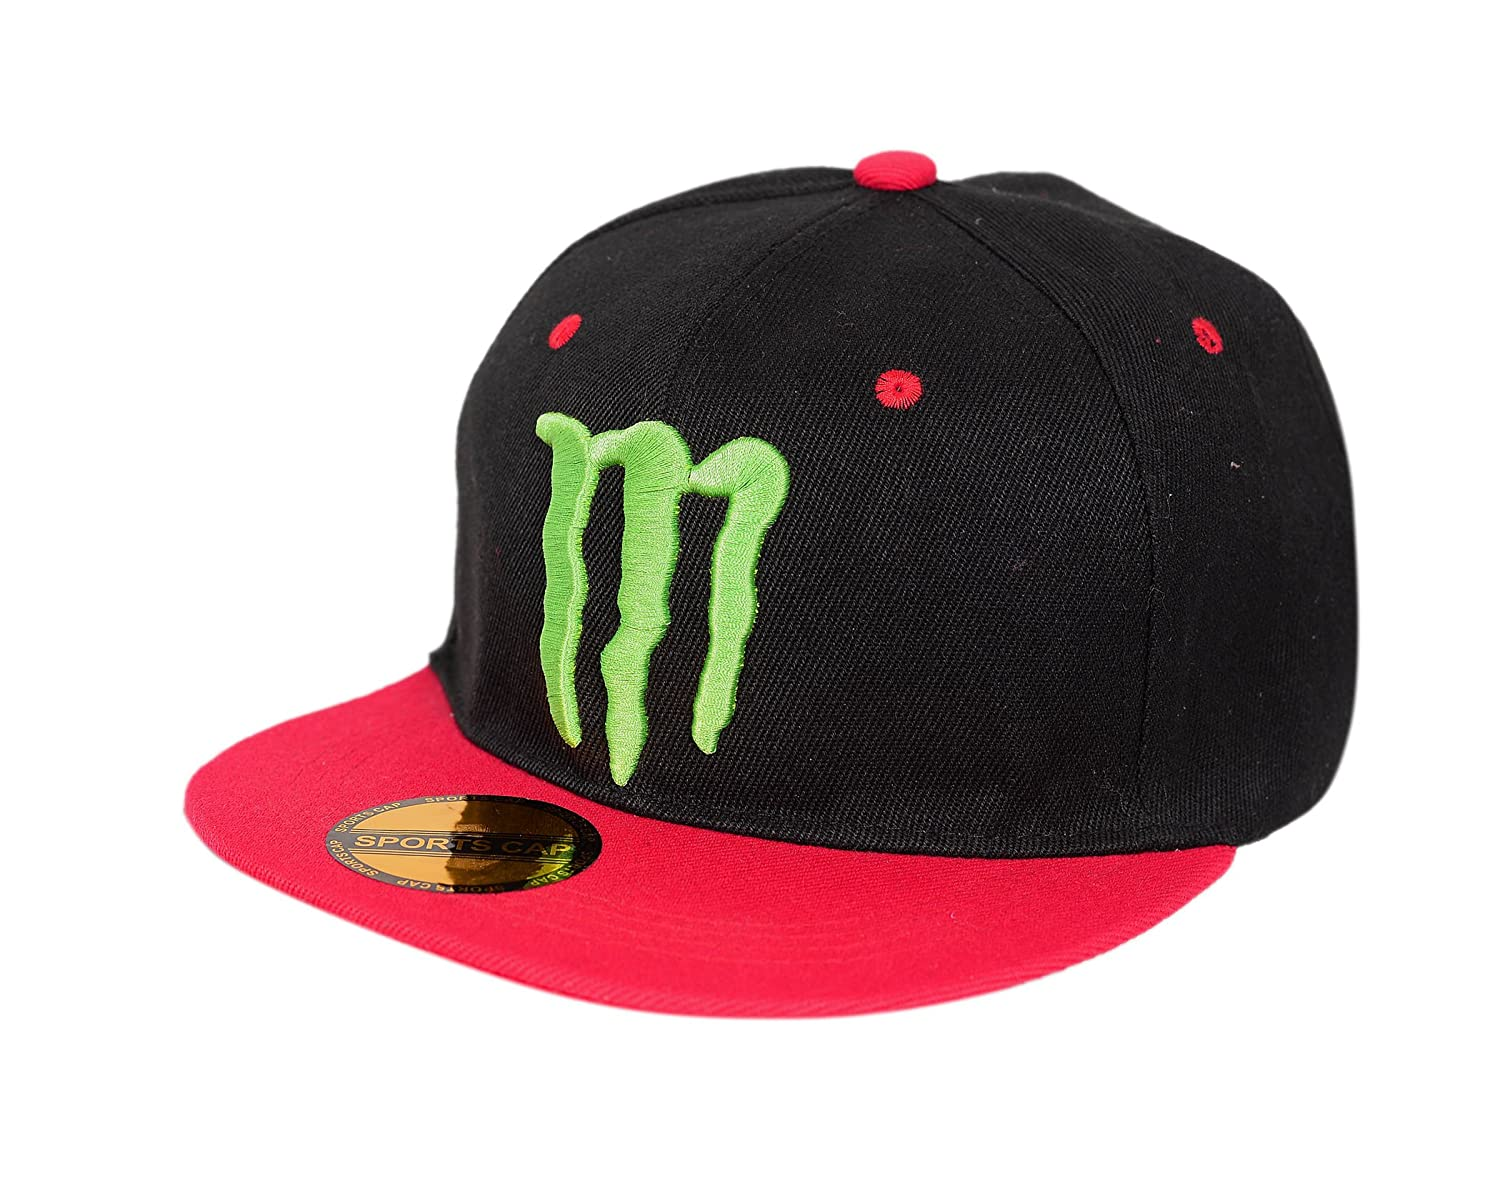 126829f77ff19 Krystle Unisex Cotton Black Red Monster Hip Hop Snapback Cap  Amazon.in  Clothing    Accessories